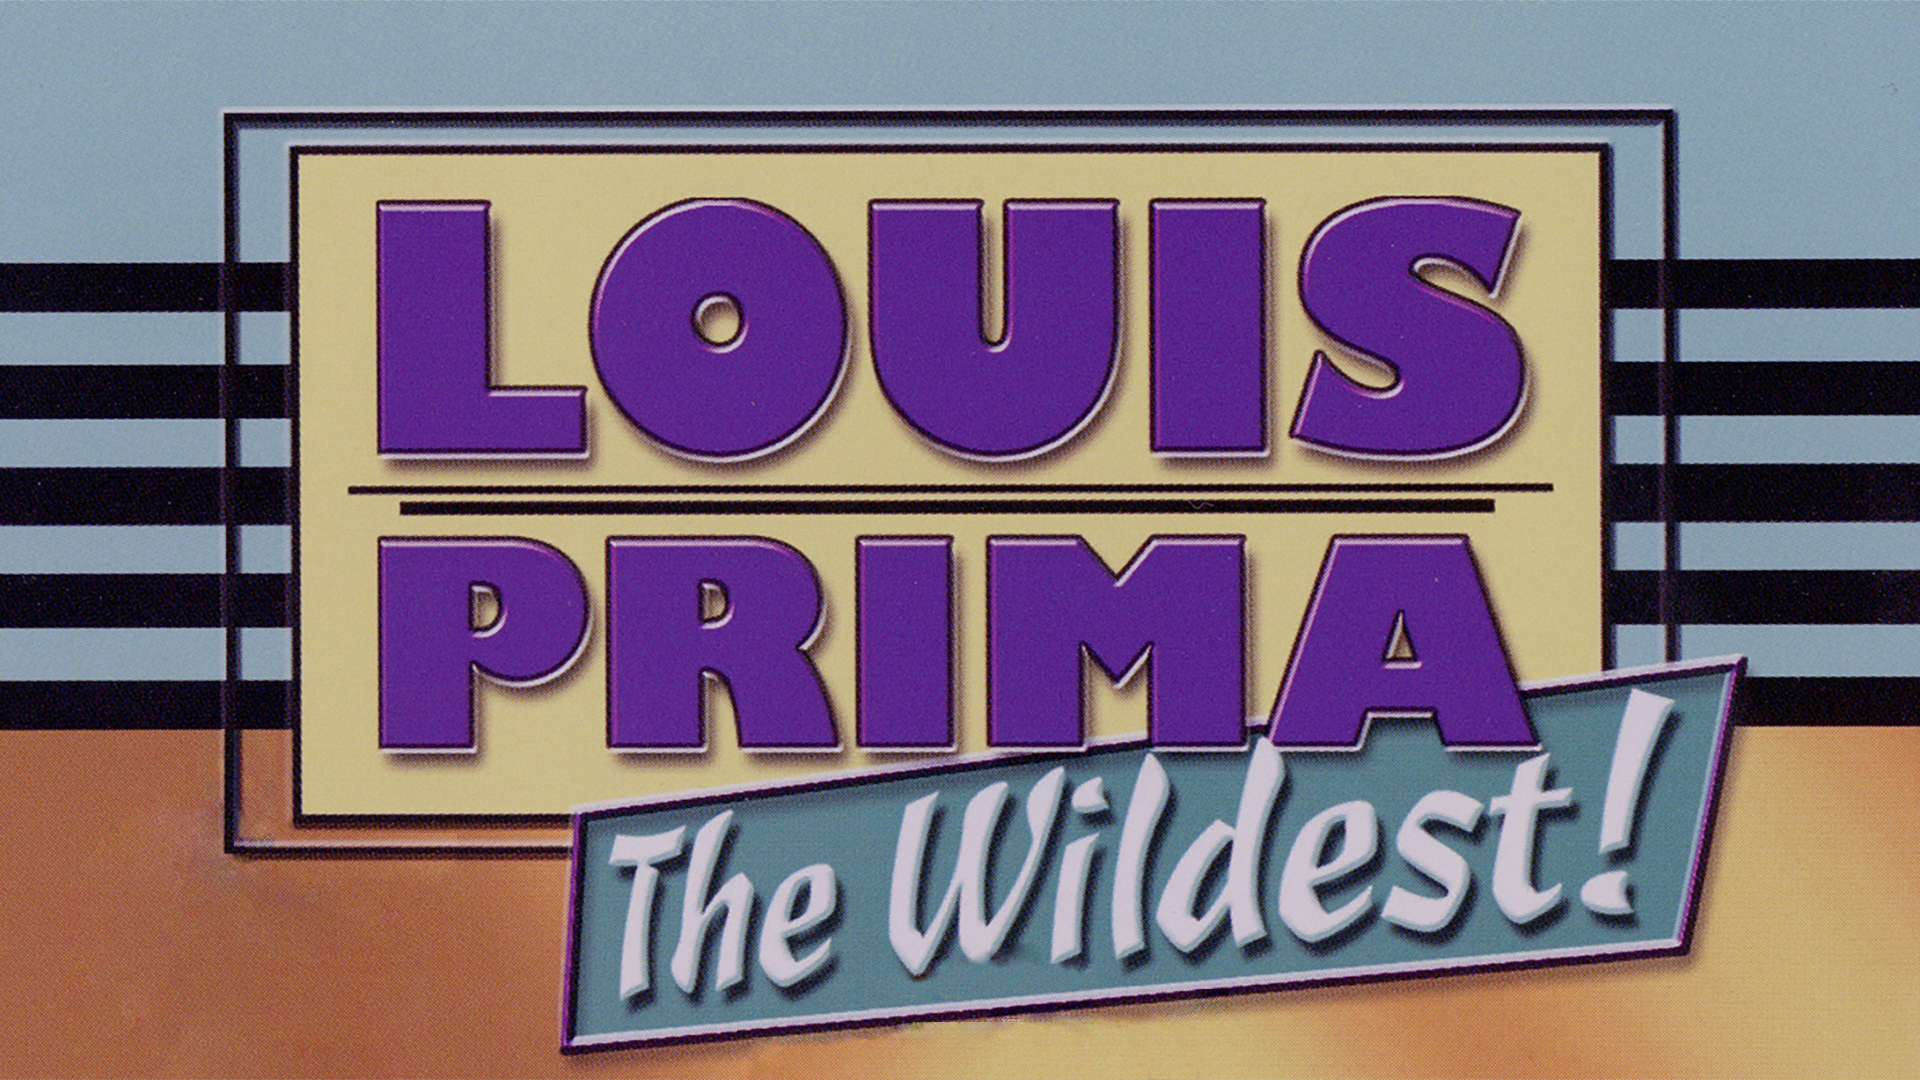 Louis Prima - Louis Prima The Wildest